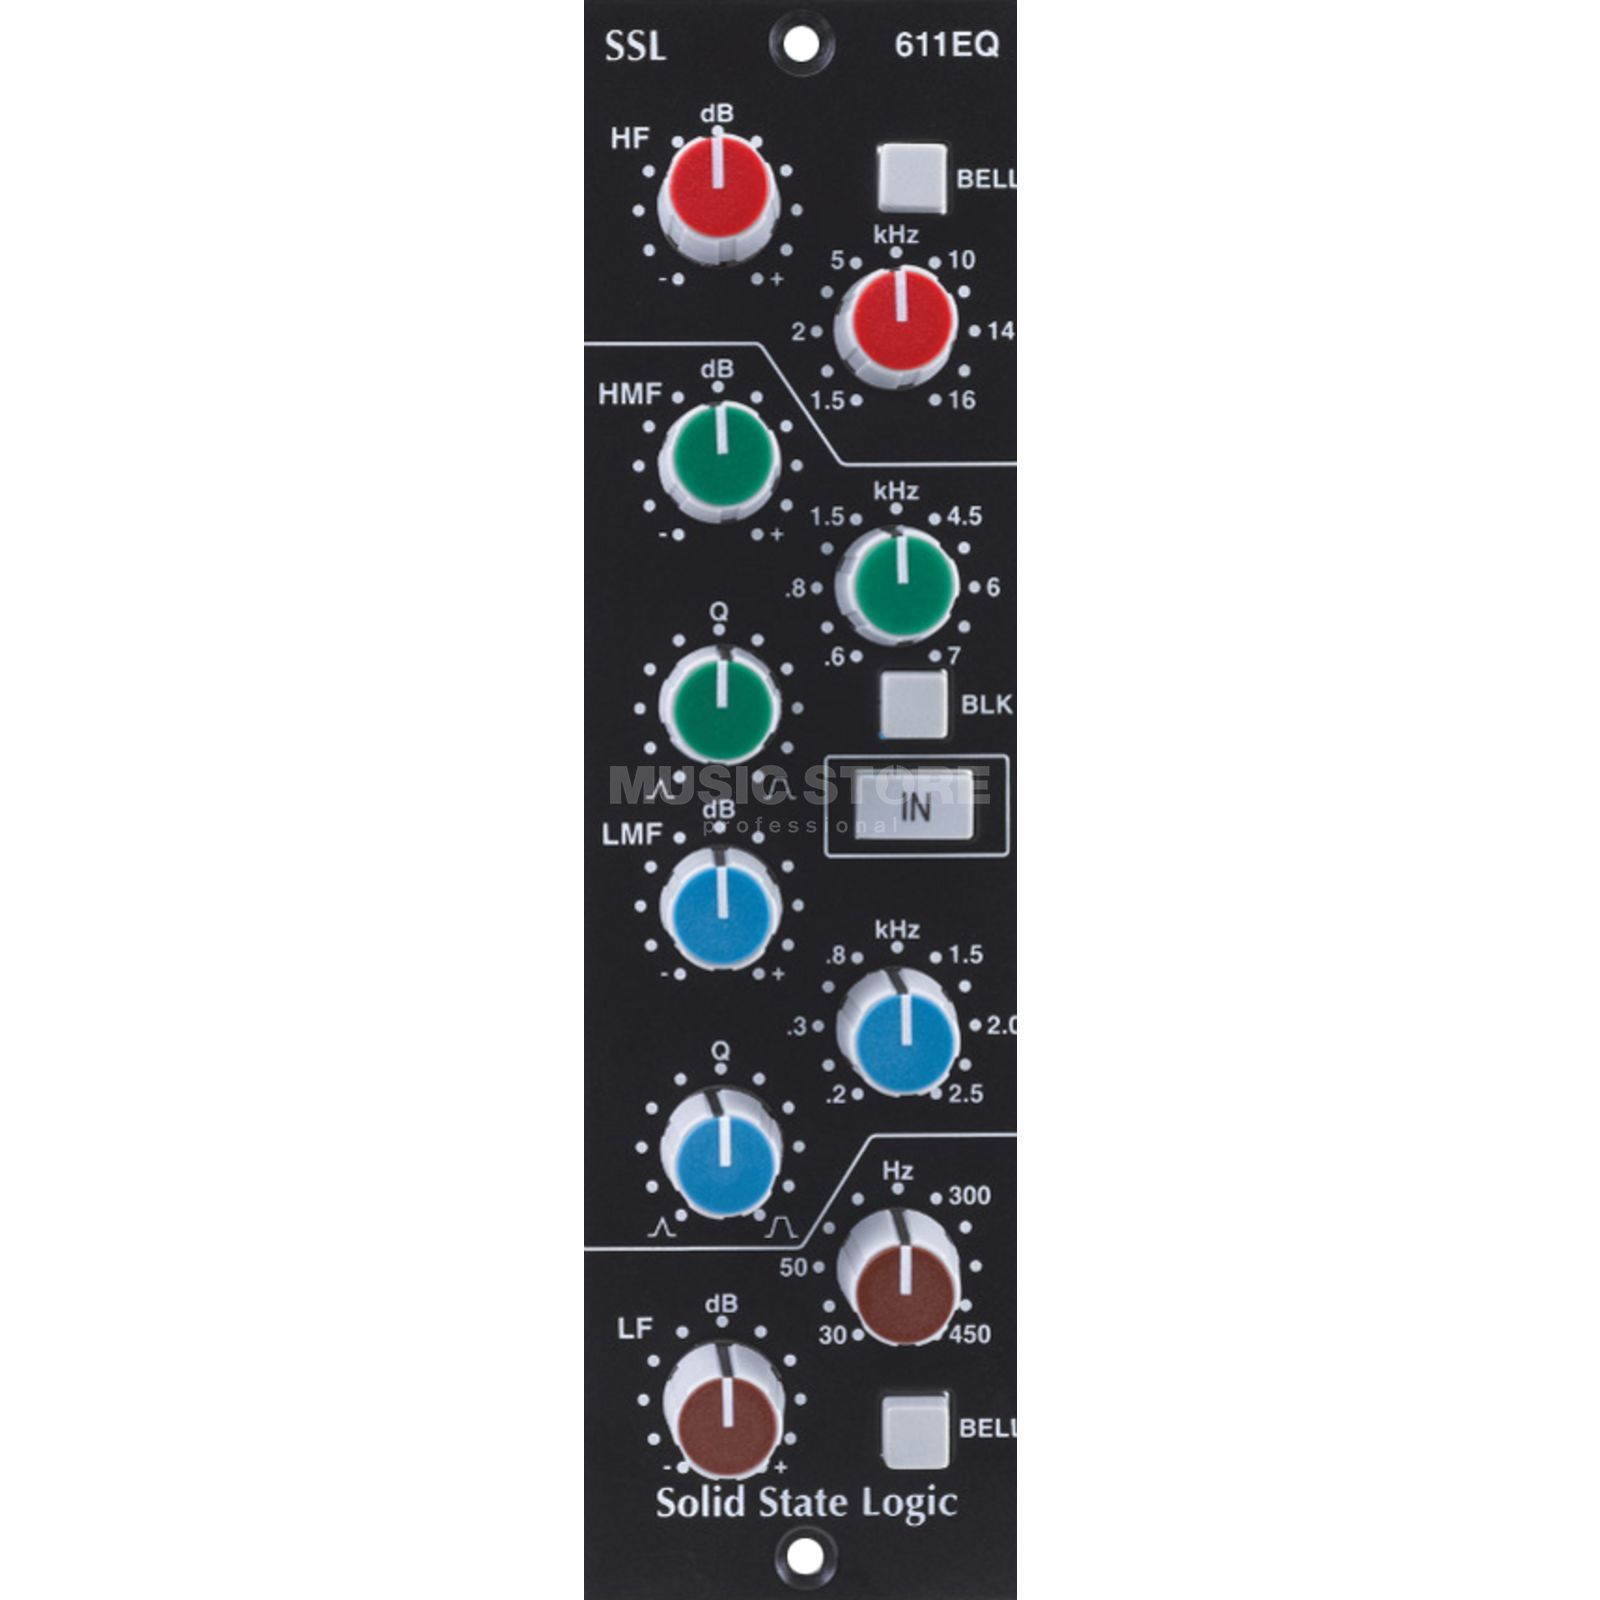 SSL Solid State Logic E-Series EQ Module for the 500 Series Produktbillede